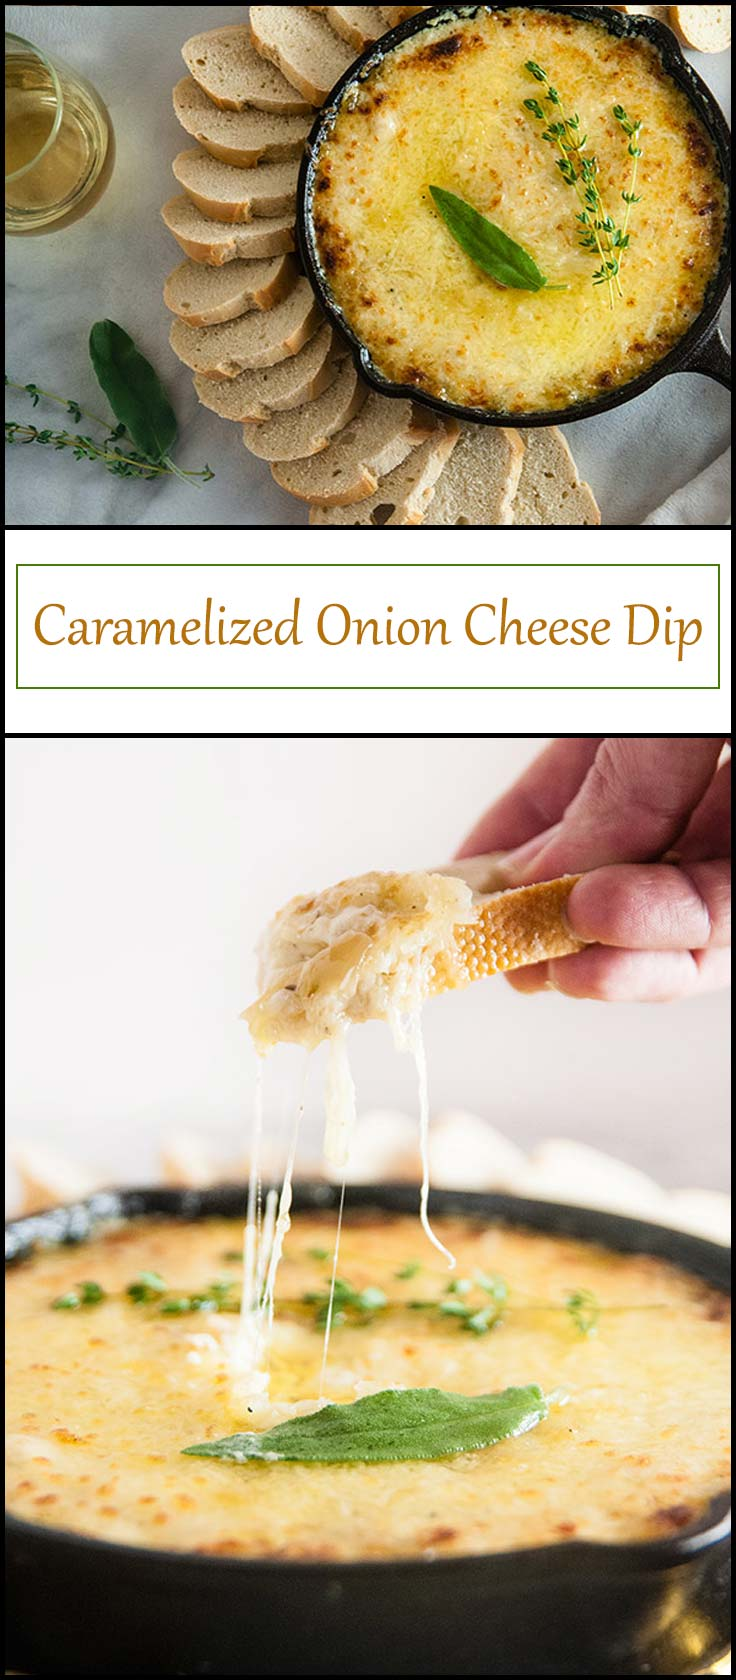 Caramelized Onion Cheese Dip from www.seasonedsprinkles.com